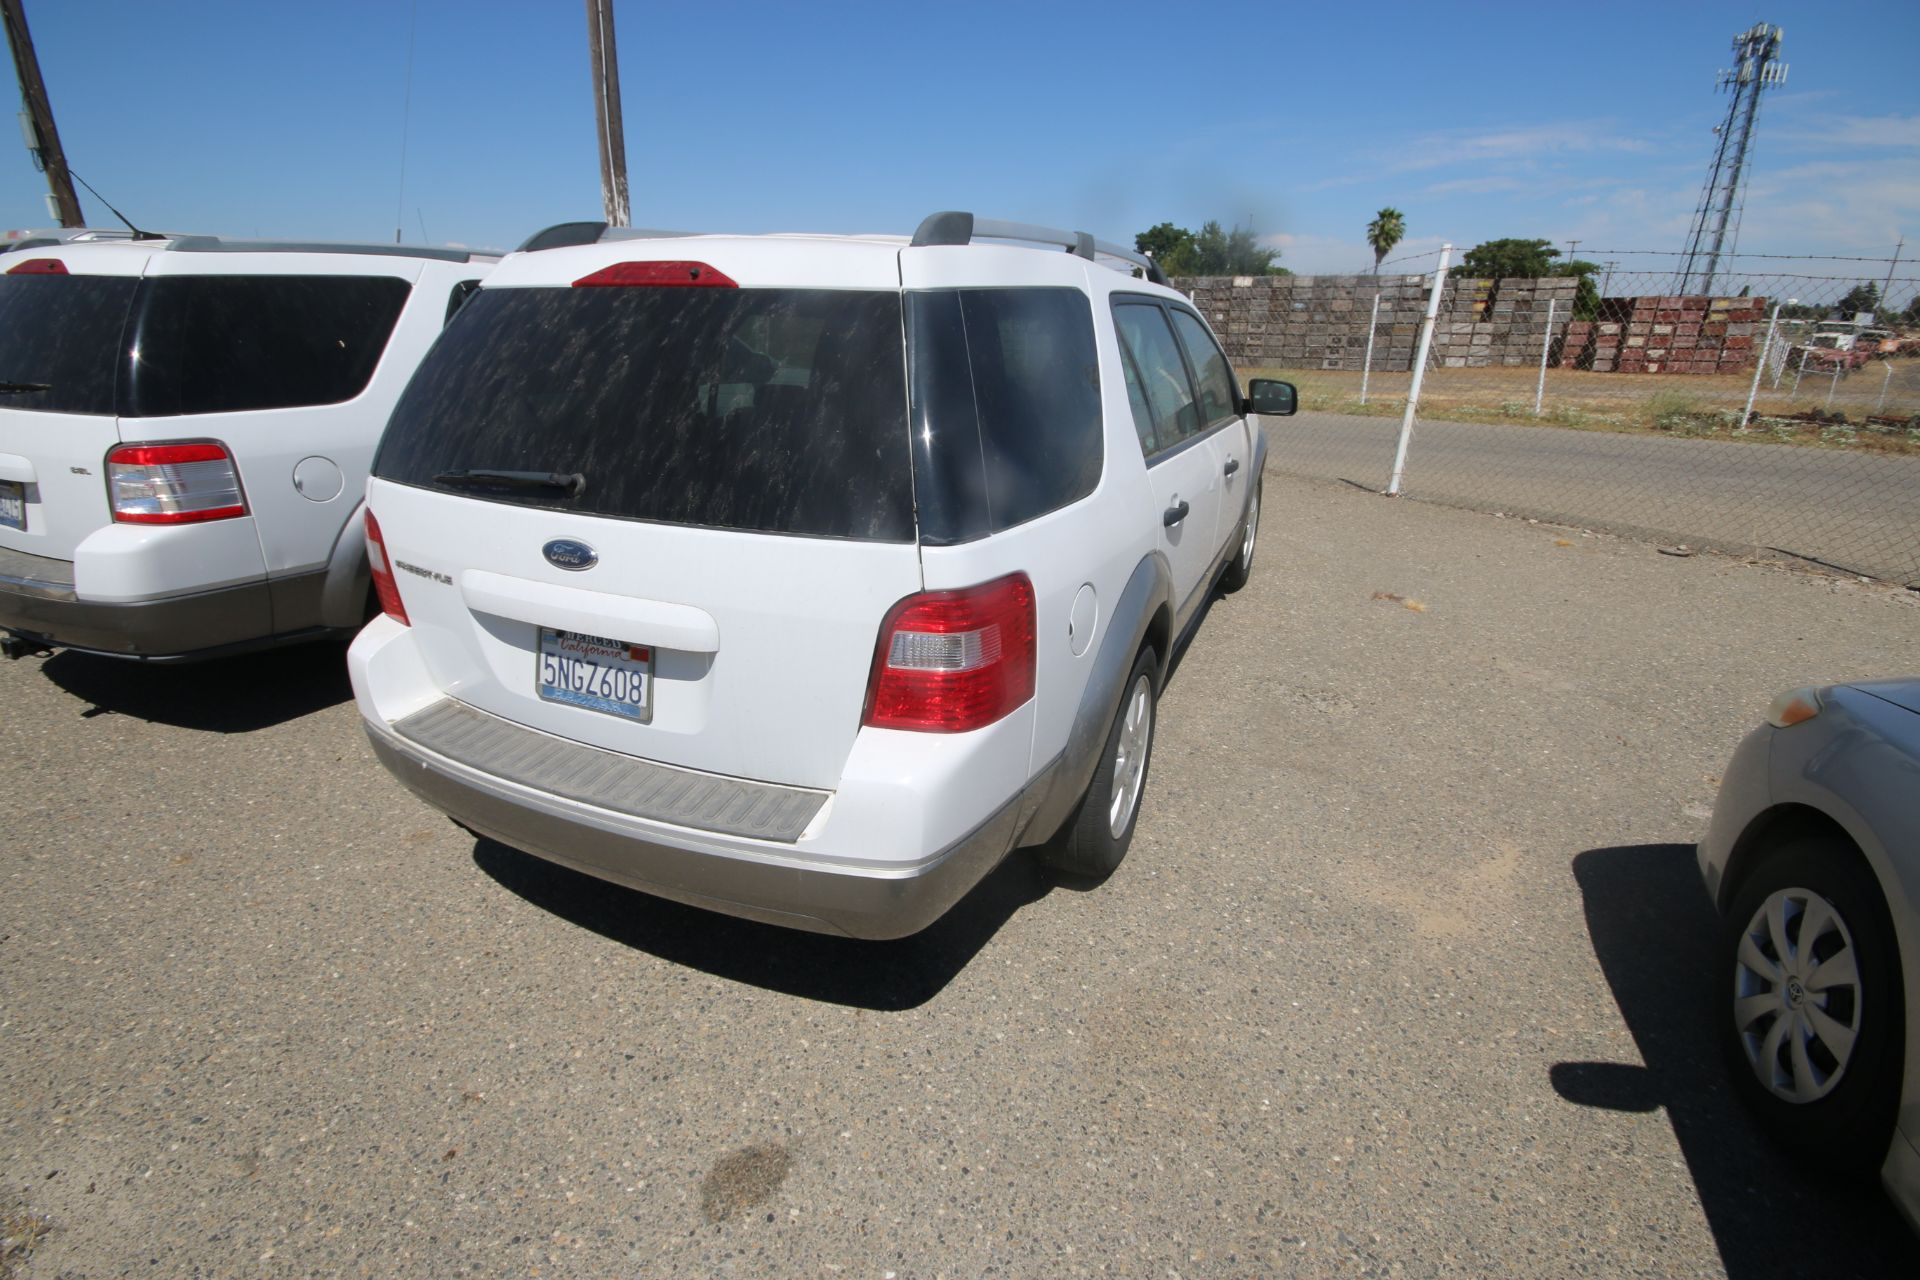 2006 Ford Freestyle, VIN #: 1FMDKO11X6GA41766, with 108,982 Miles, License Plate #: 5NGZ608, Started - Image 4 of 22